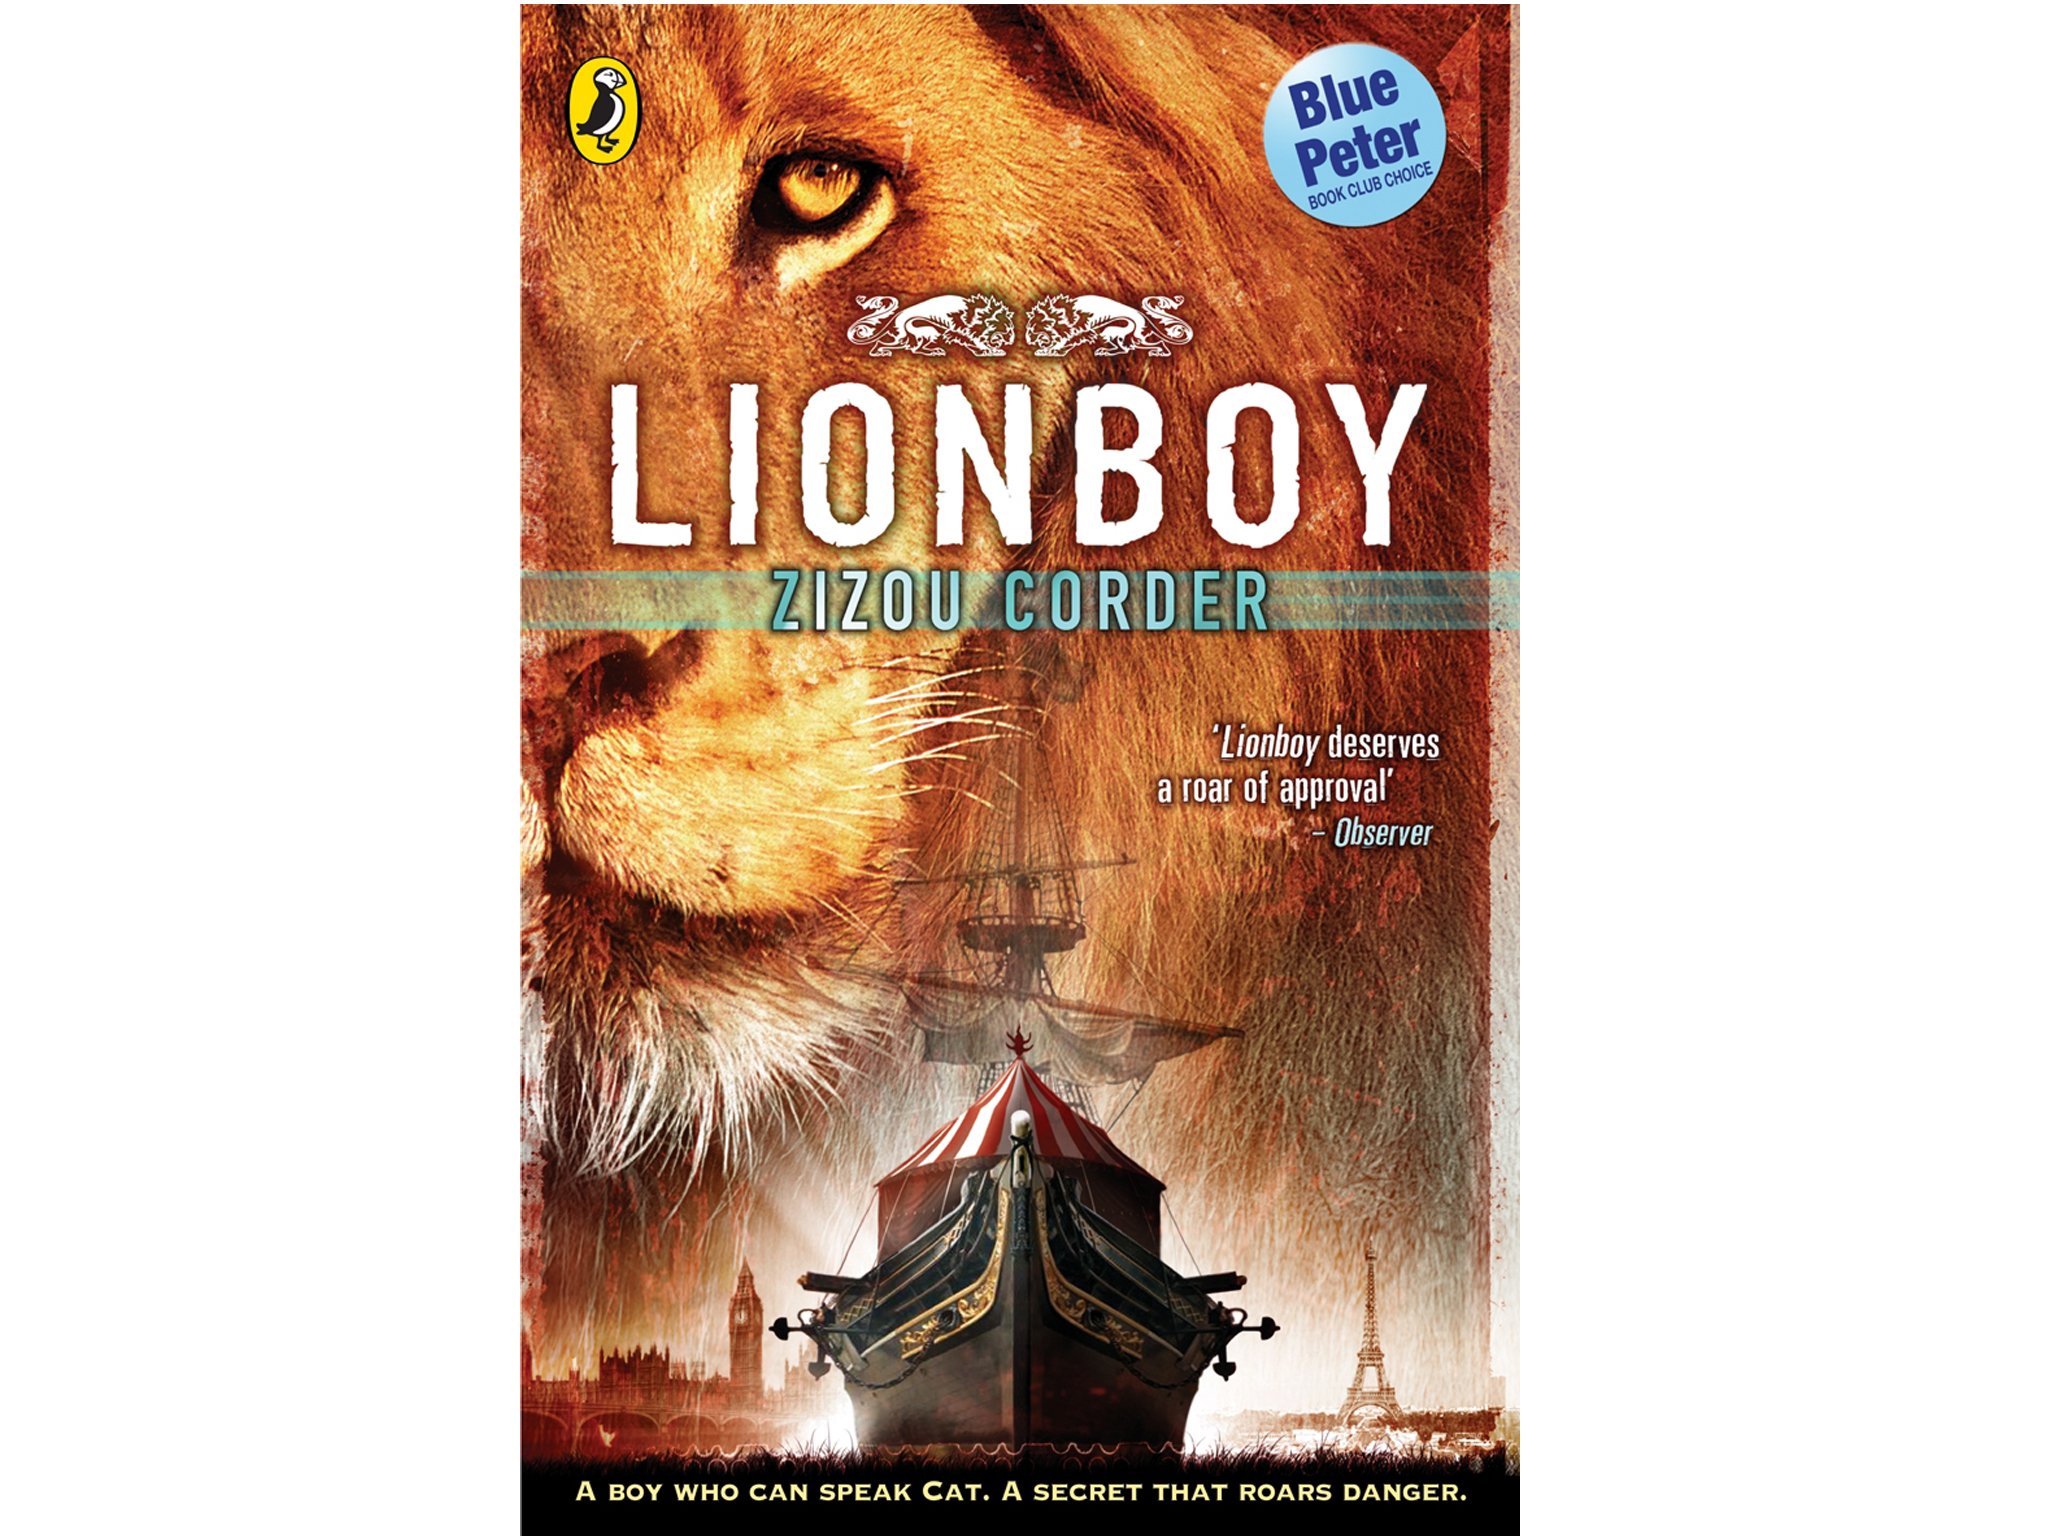 100 best children's books: Lionboy